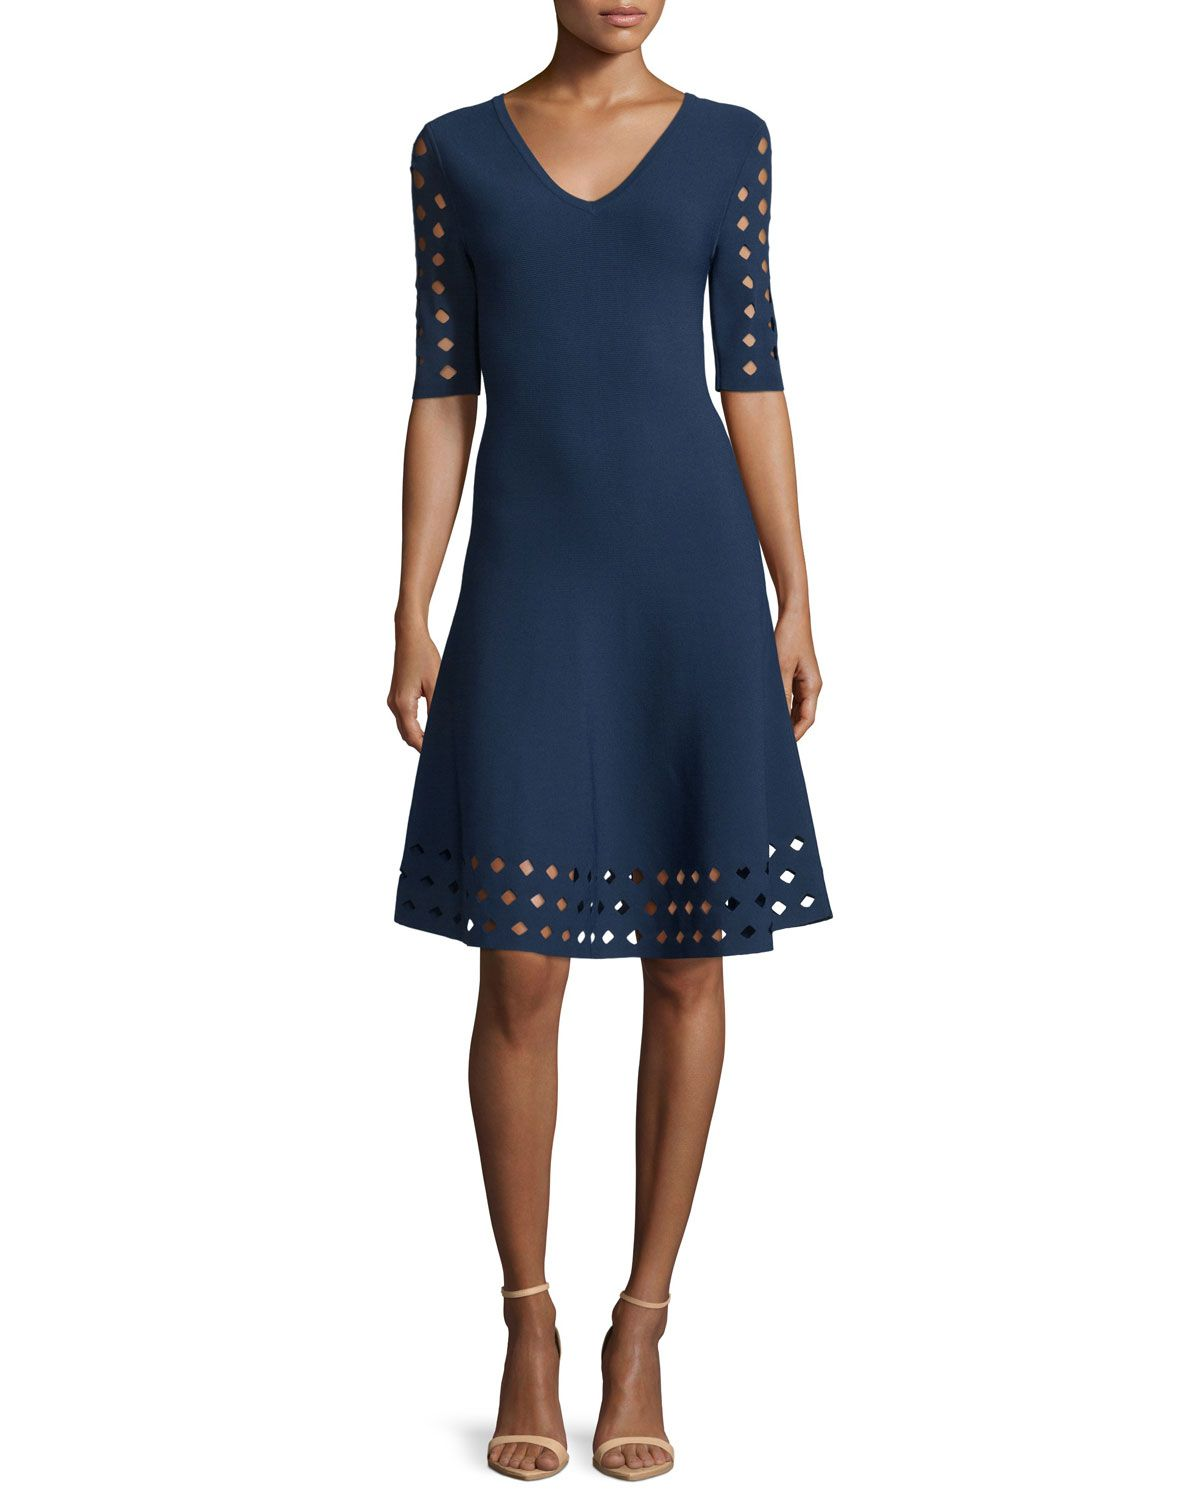 Half-Sleeve Diamond Pointelle Fit-&-Flare Dress, Navy (Blue) - Milly